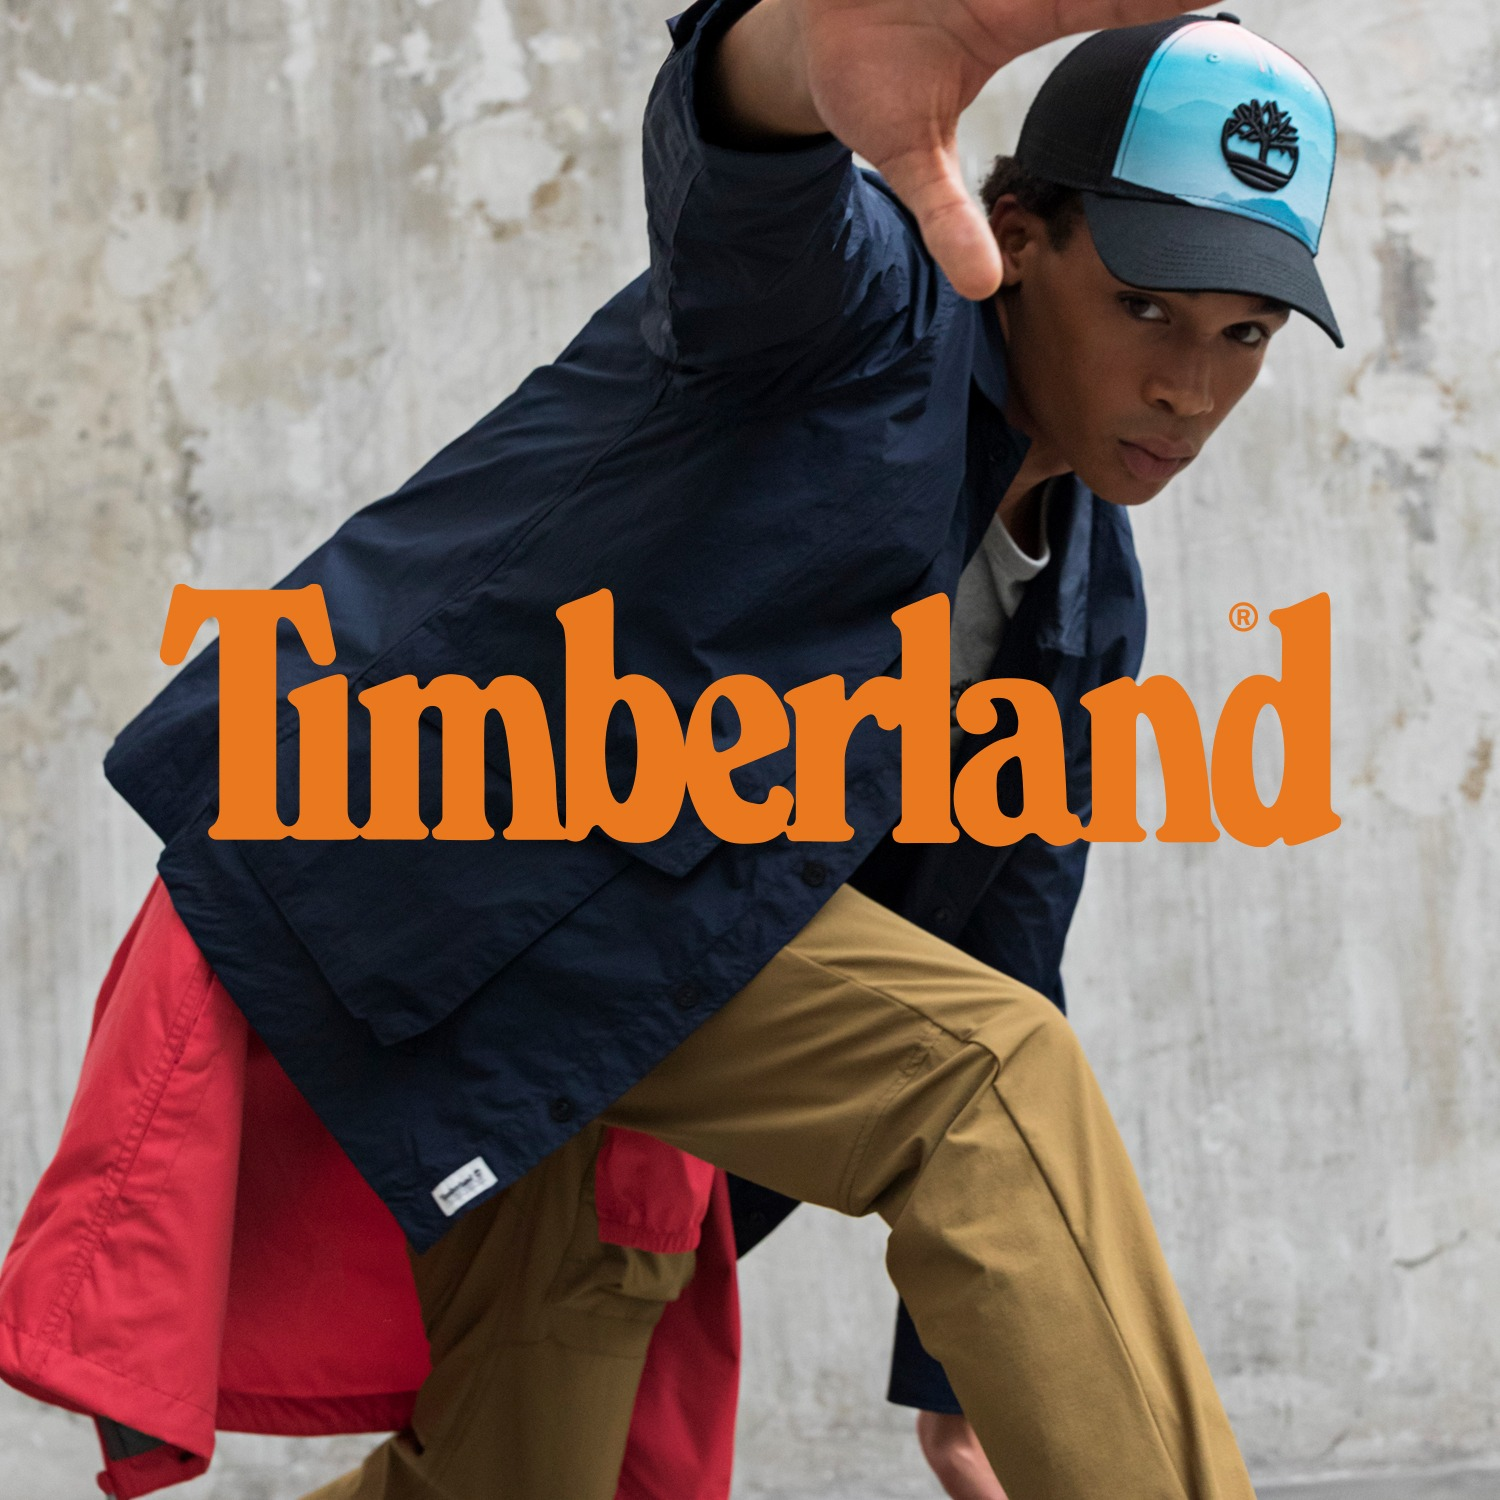 Timberland Training Manual.